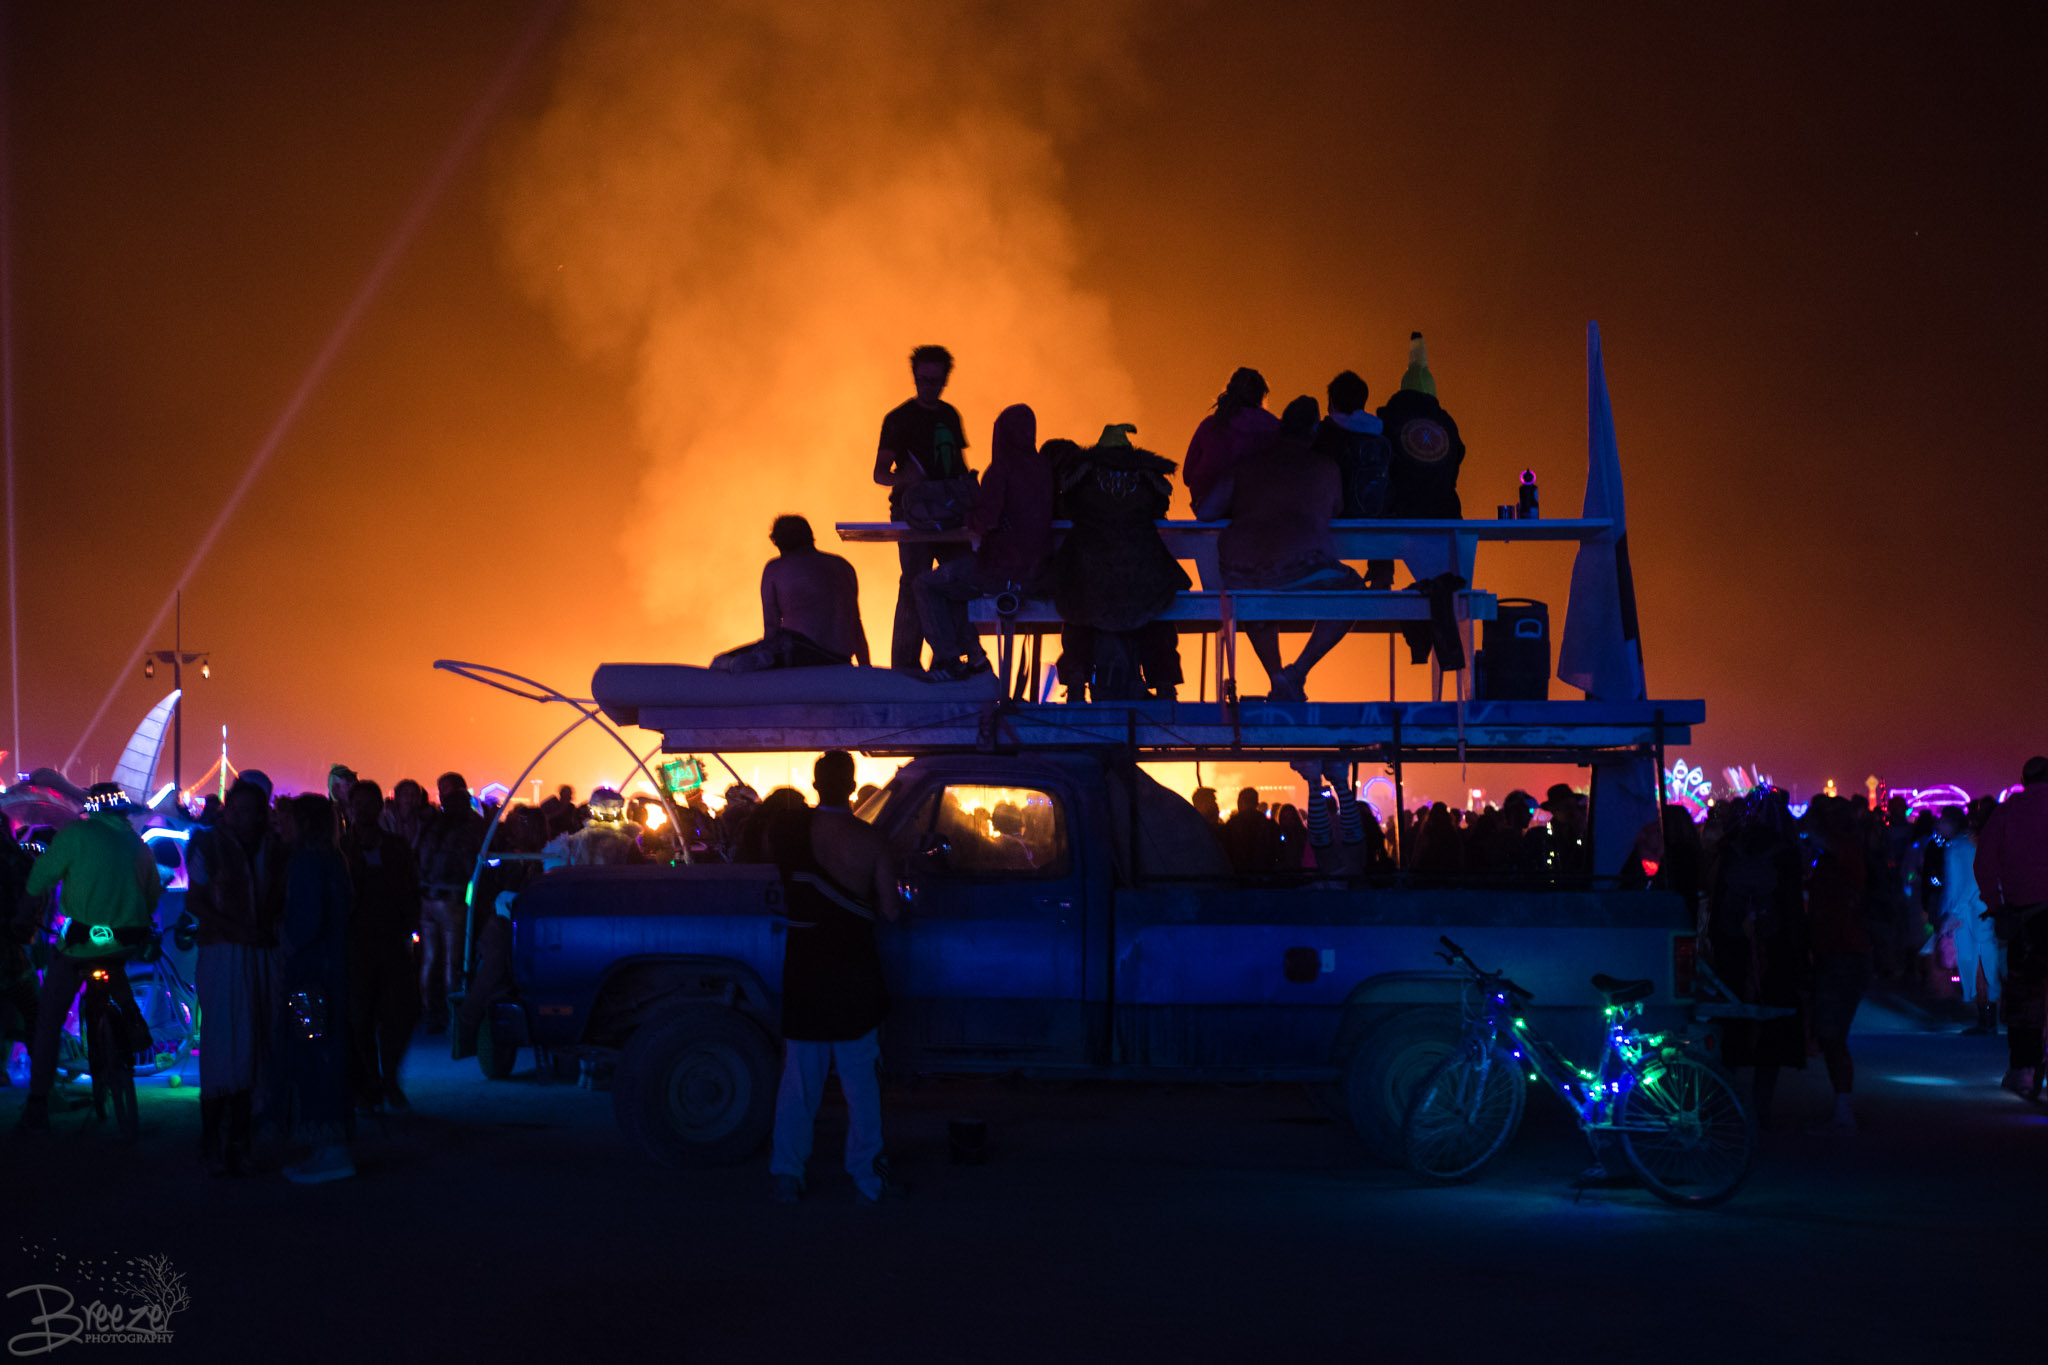 Brie'Ana Breeze Photography & Media - Burning Man 2018-4384.jpg